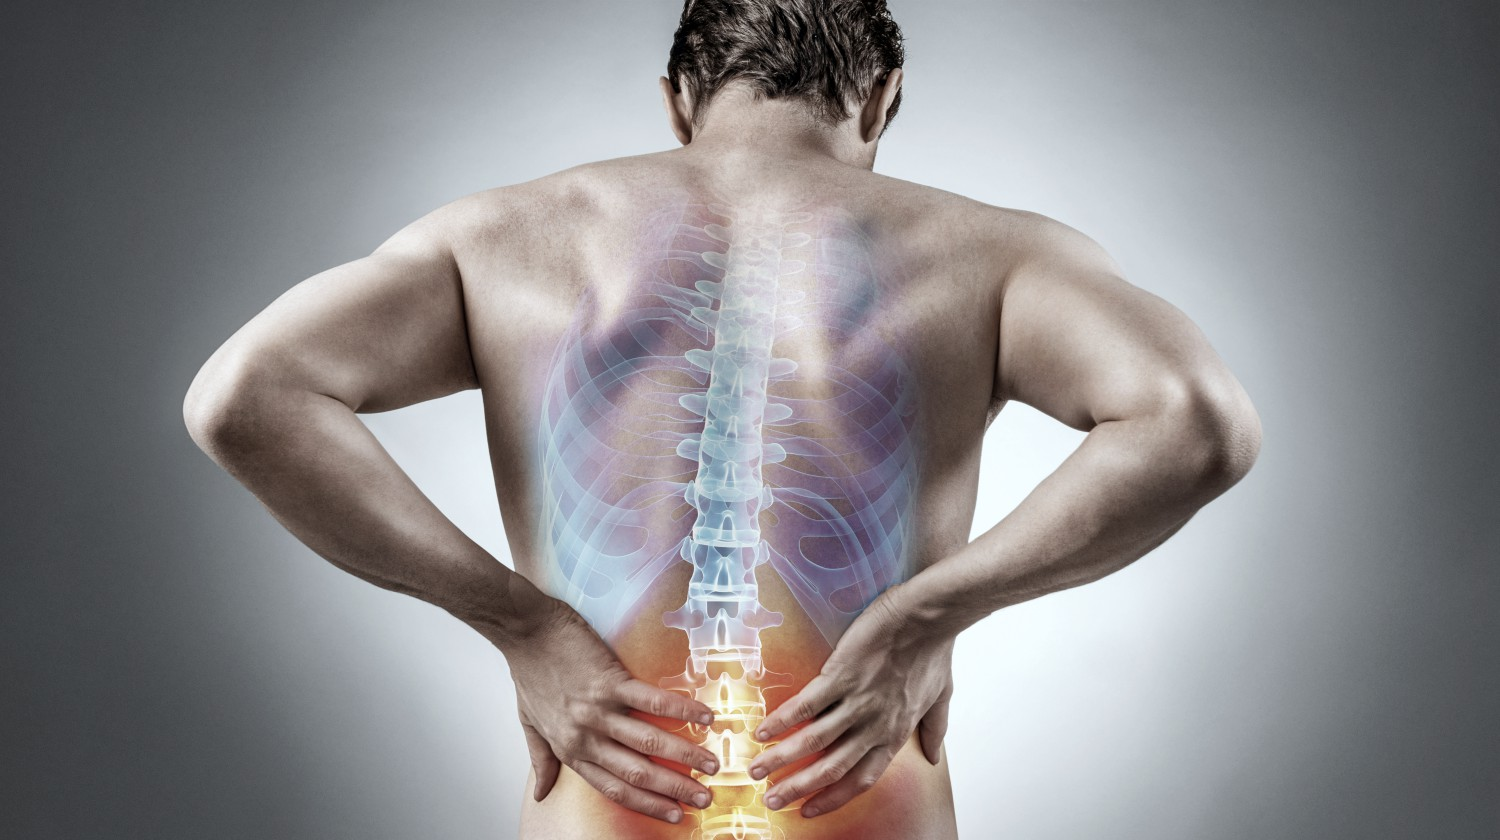 Featured | man having lower back pain | Emu Oil: The Natural Inflammation Reducer | what is emu oil